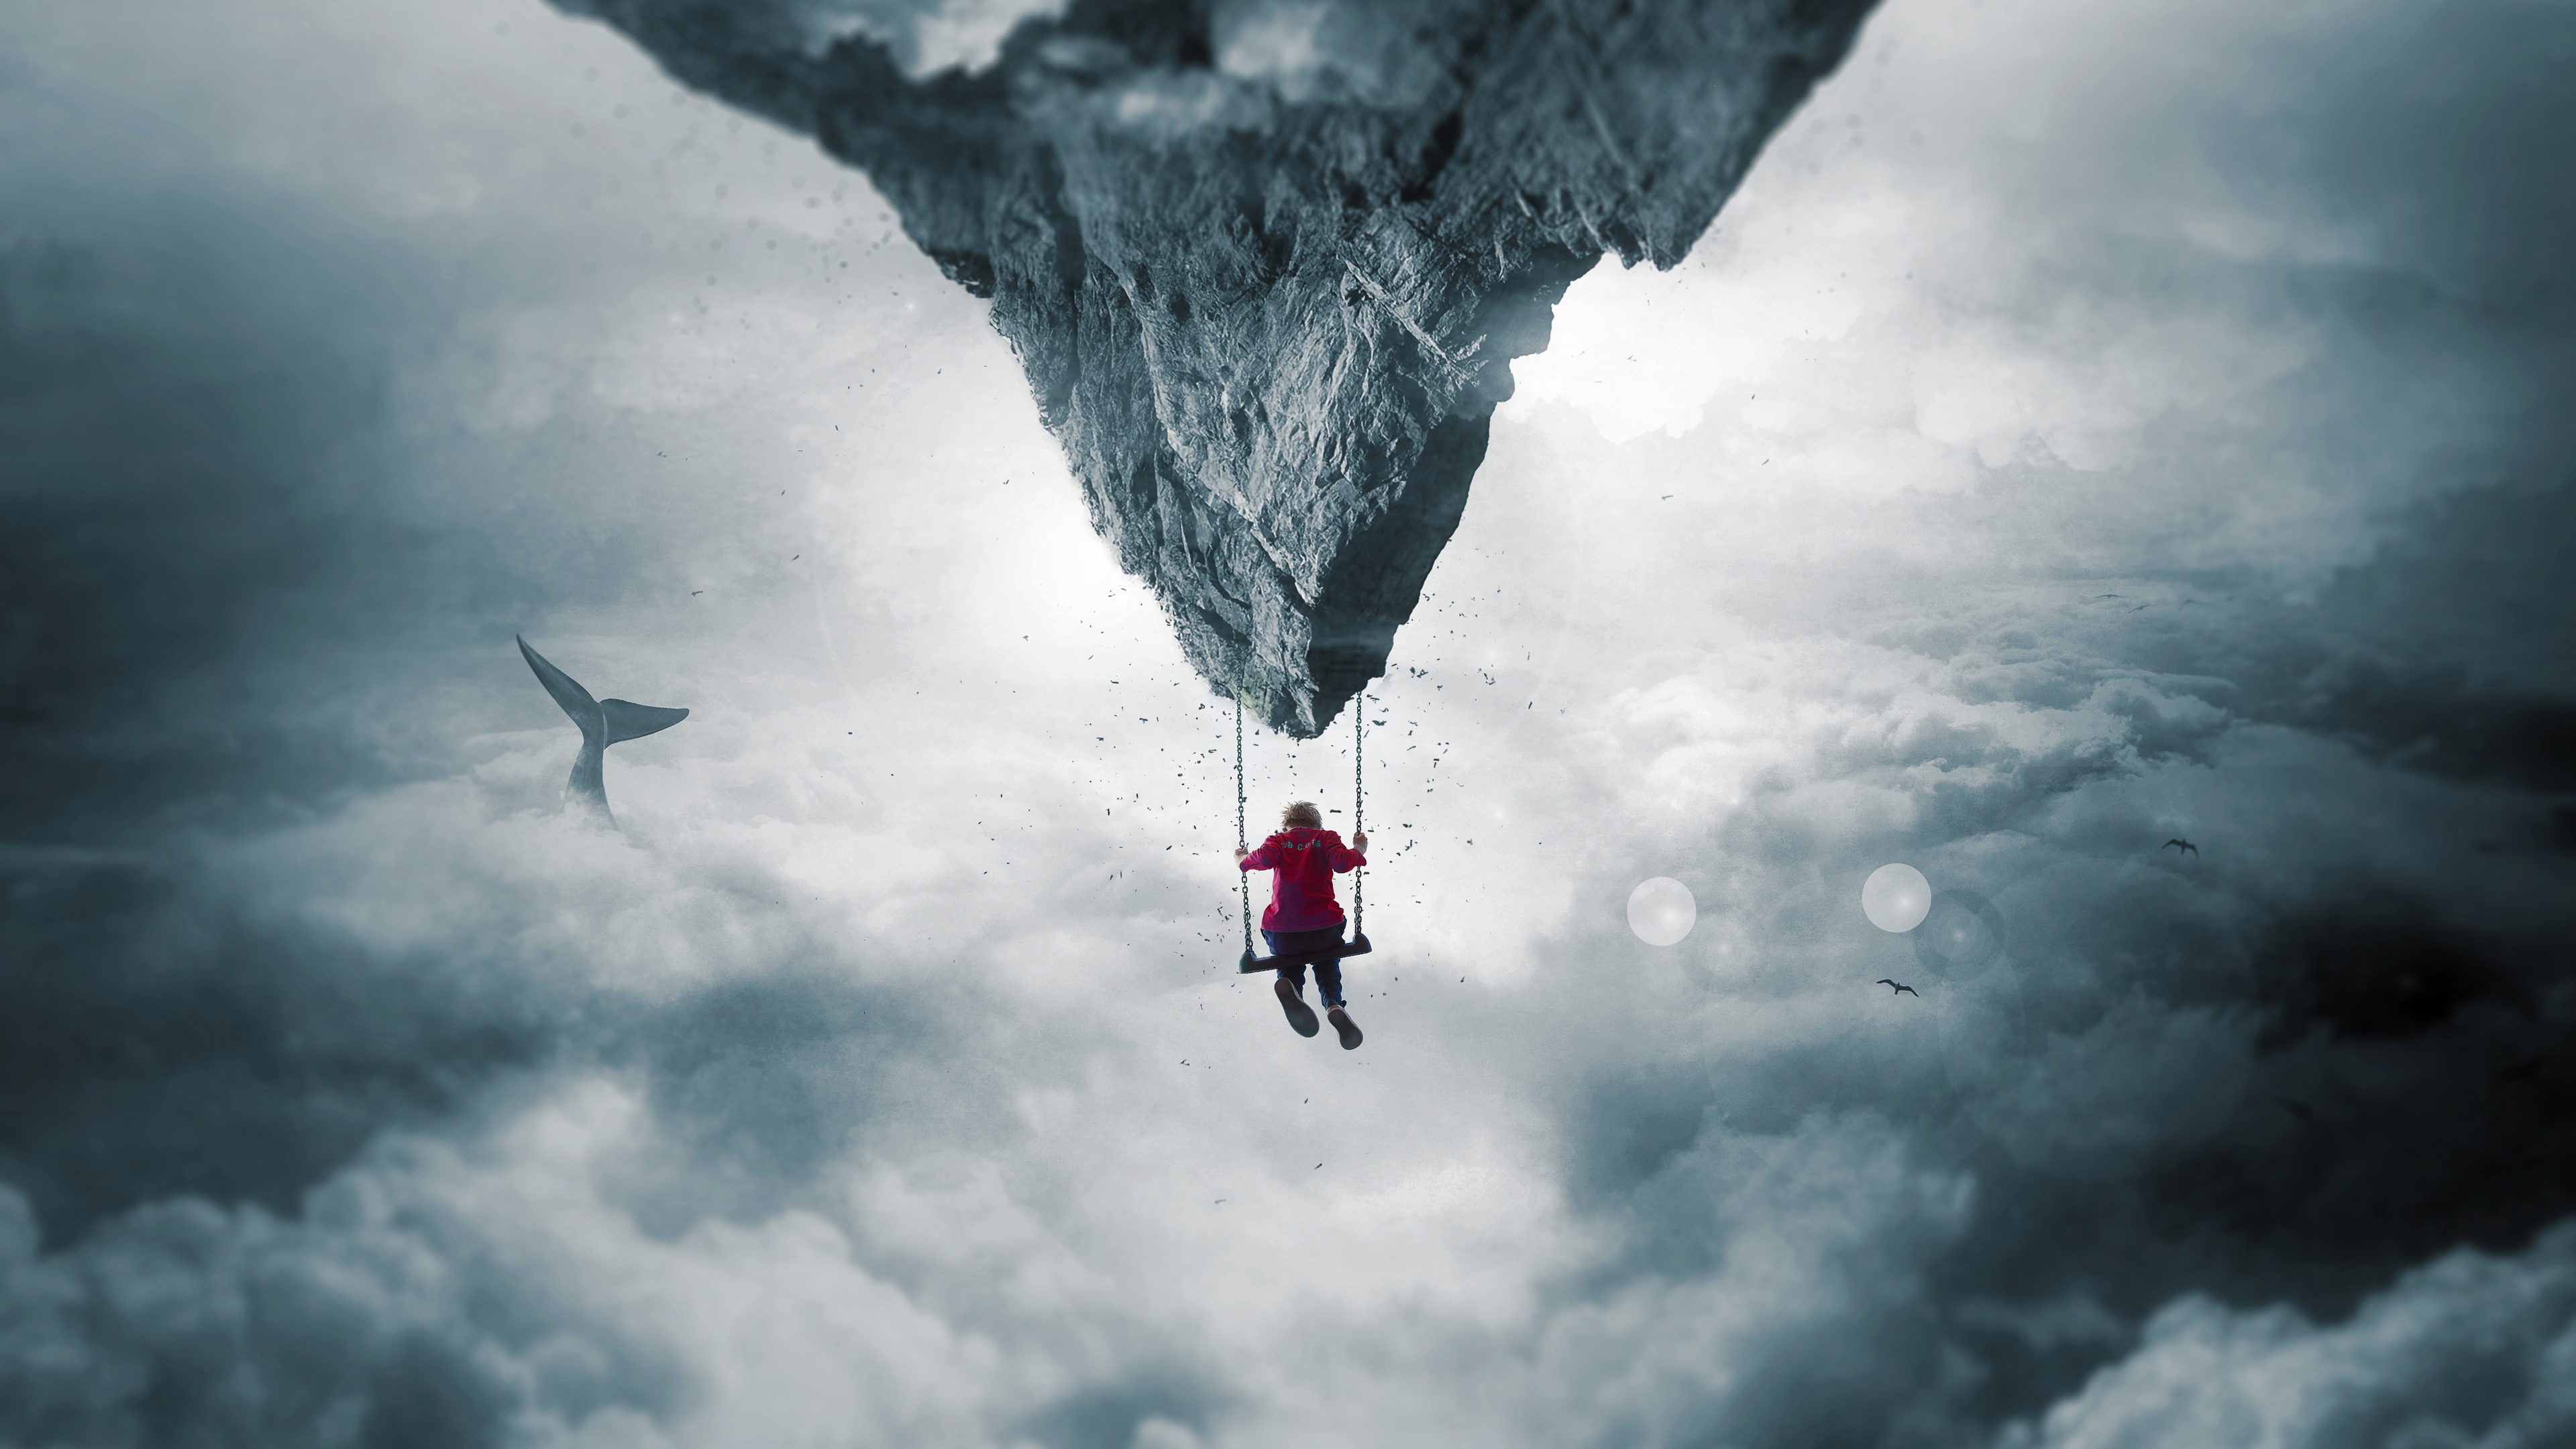 dream swing 1563222137 - Dream Swing - swing wallpapers, hd-wallpapers, digital art wallpapers, artwork wallpapers, artist wallpapers, 5k wallpapers, 4k-wallpapers